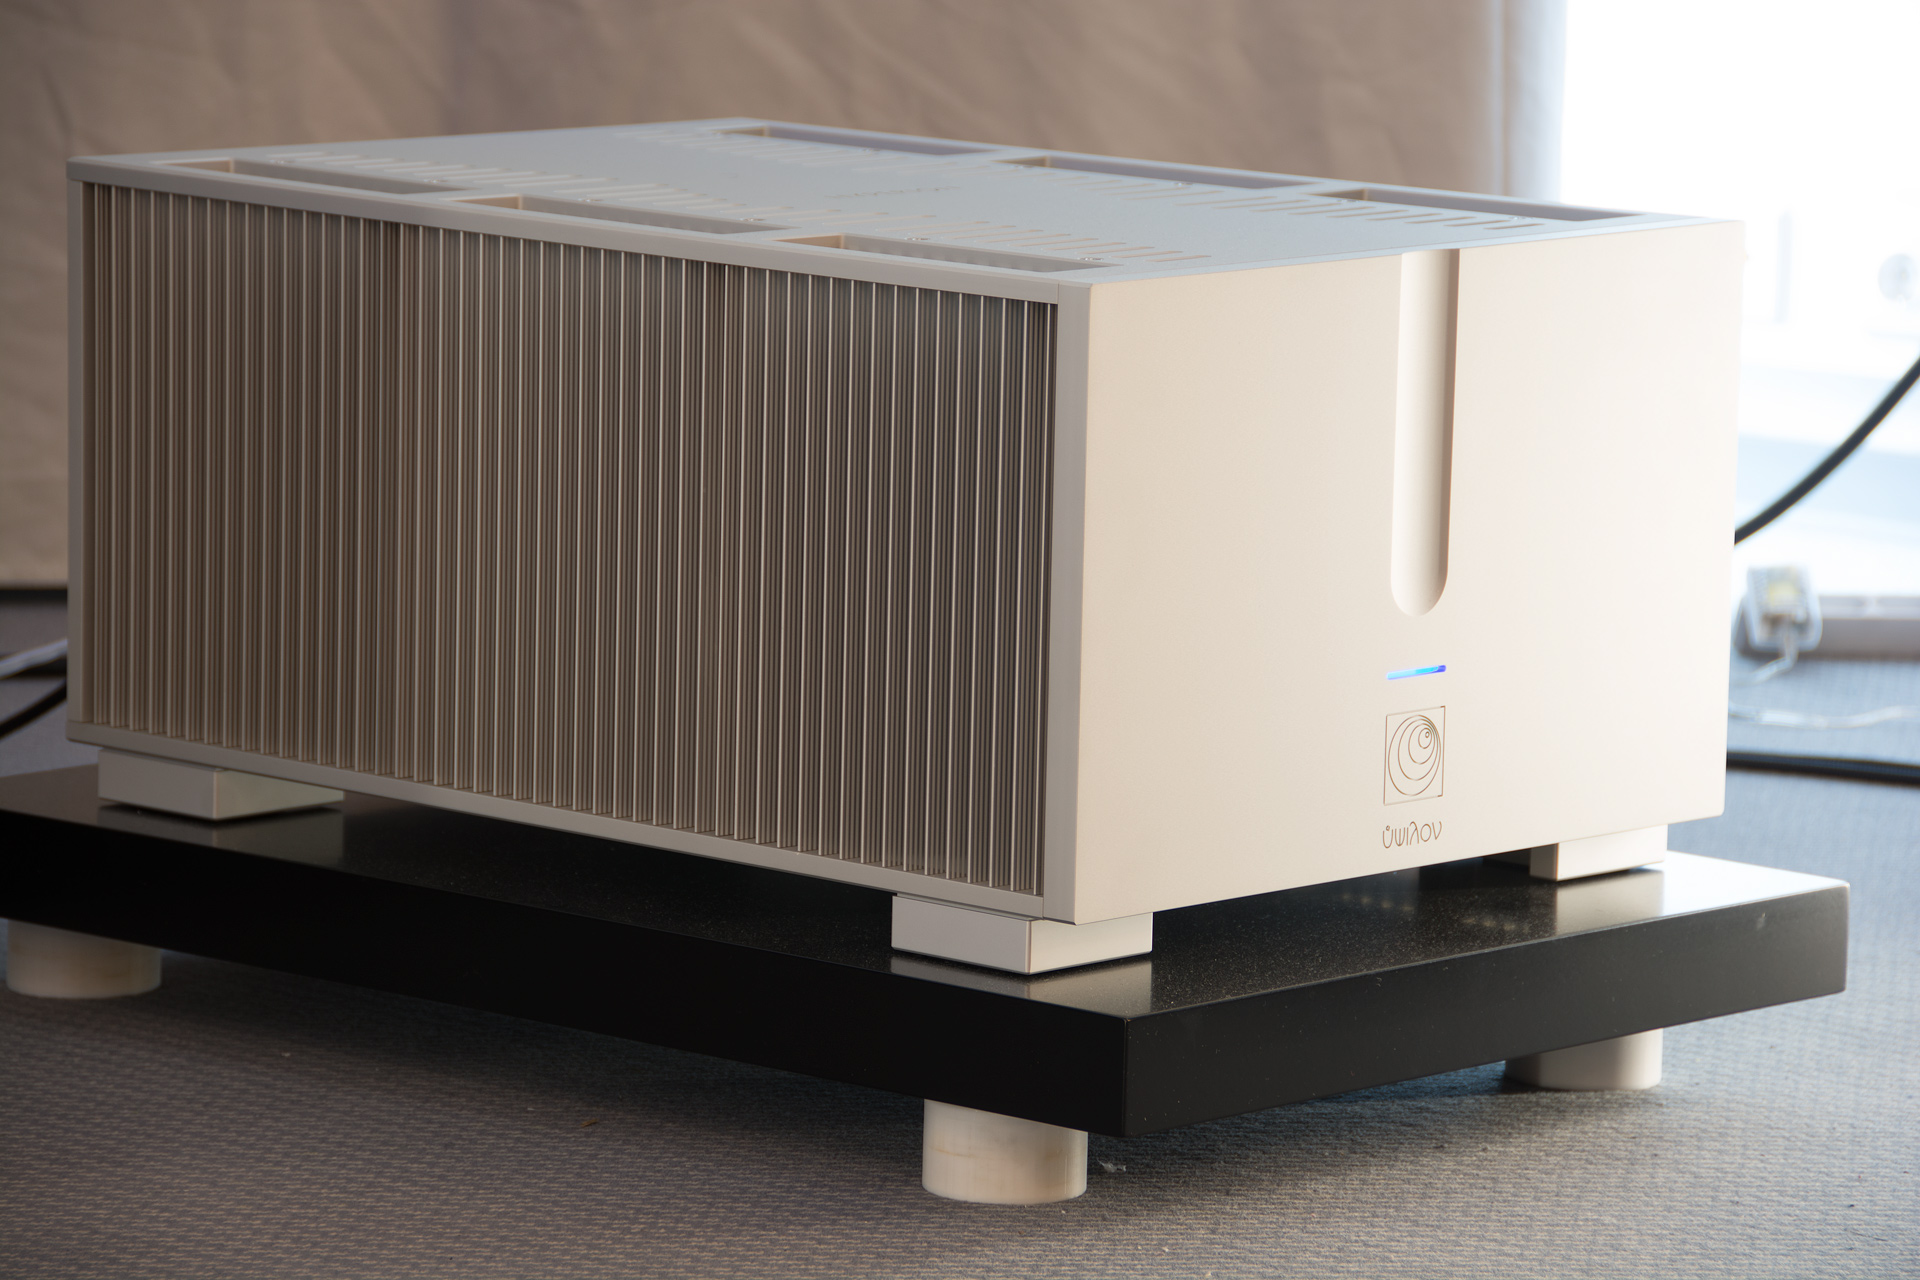 Ypsilon - Hyperion - Monoblock - Power Amplifier - Wilson Benesch - Resolution - Loudspeaker